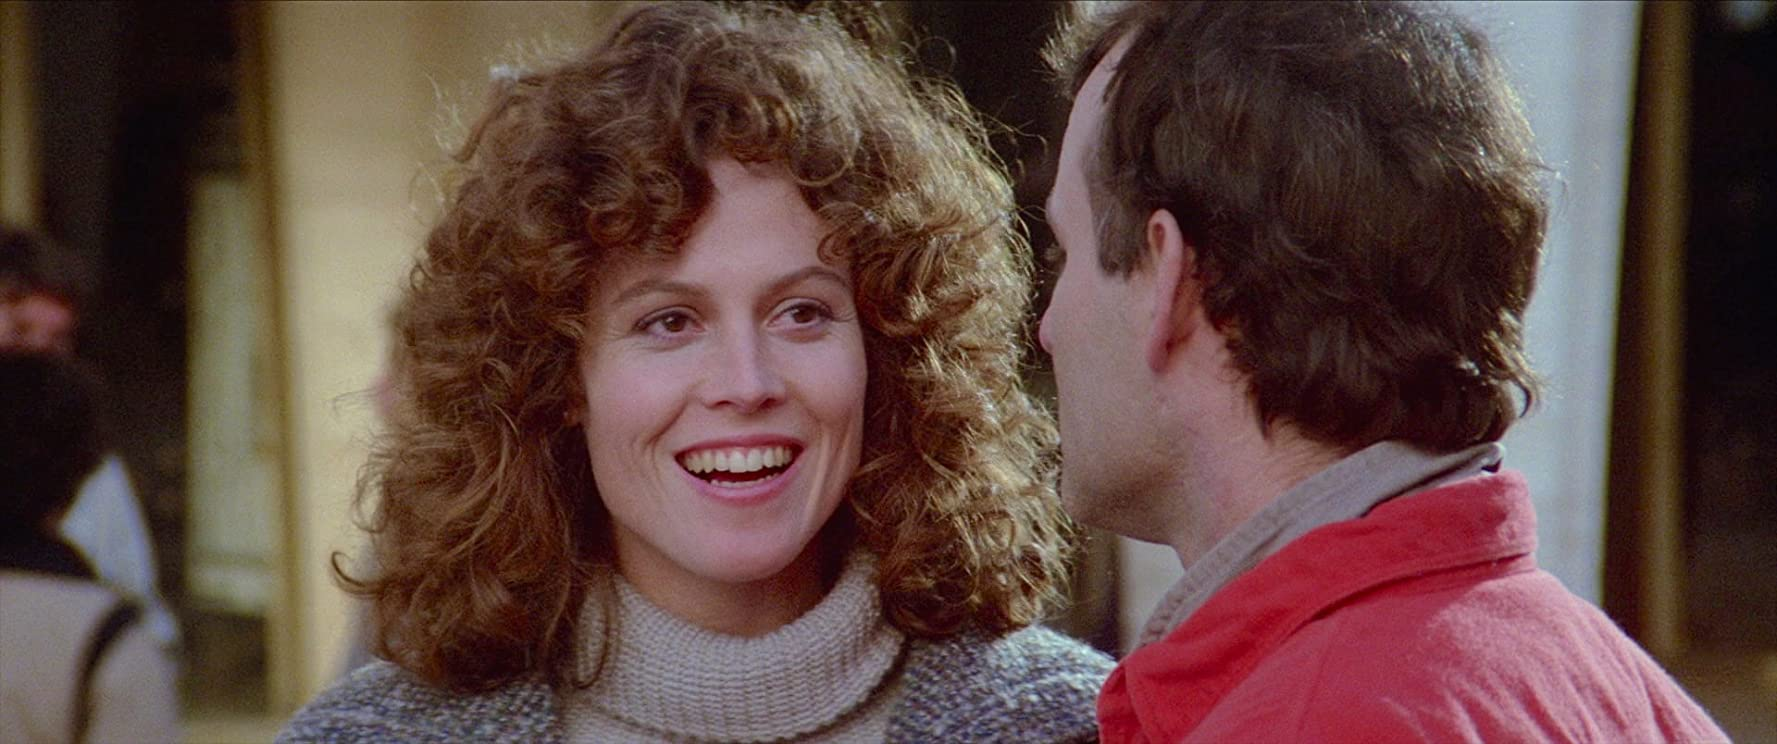 Bill Murray and Sigourney Weaver in Ghost Busters 1984